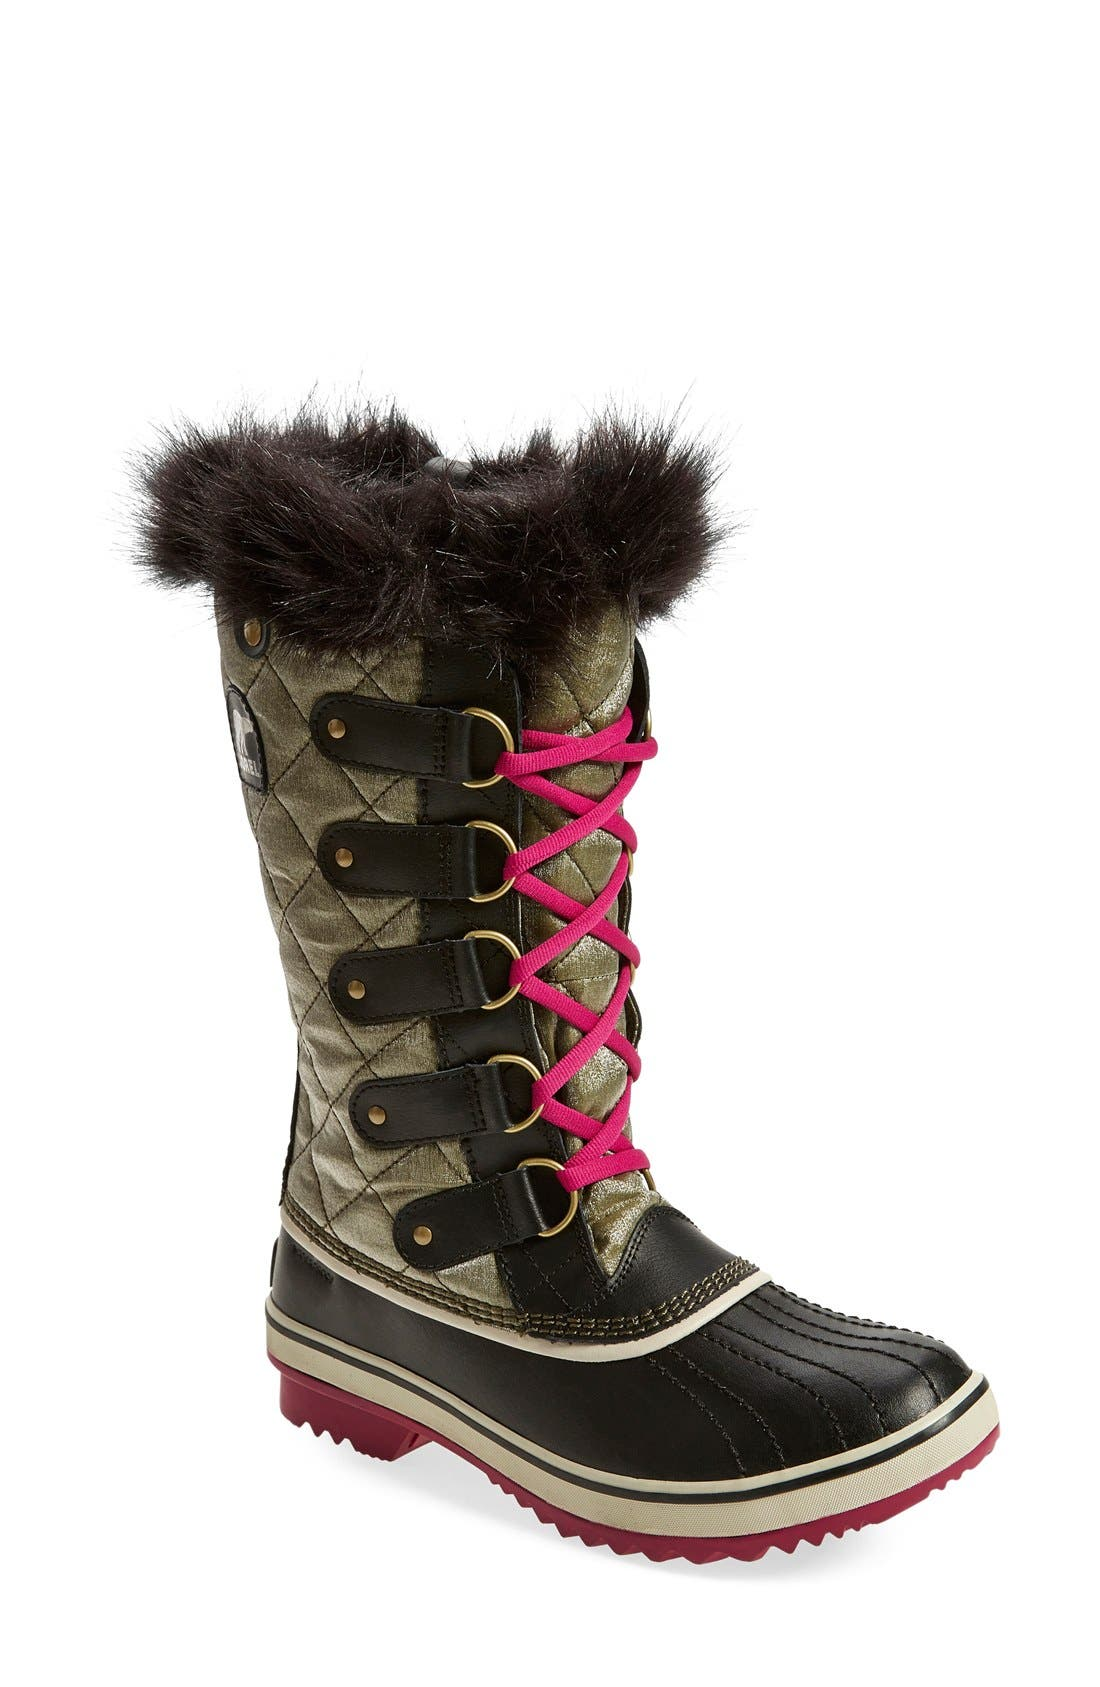 Alternate Image 1 Selected - SOREL 'Tofino' Boot